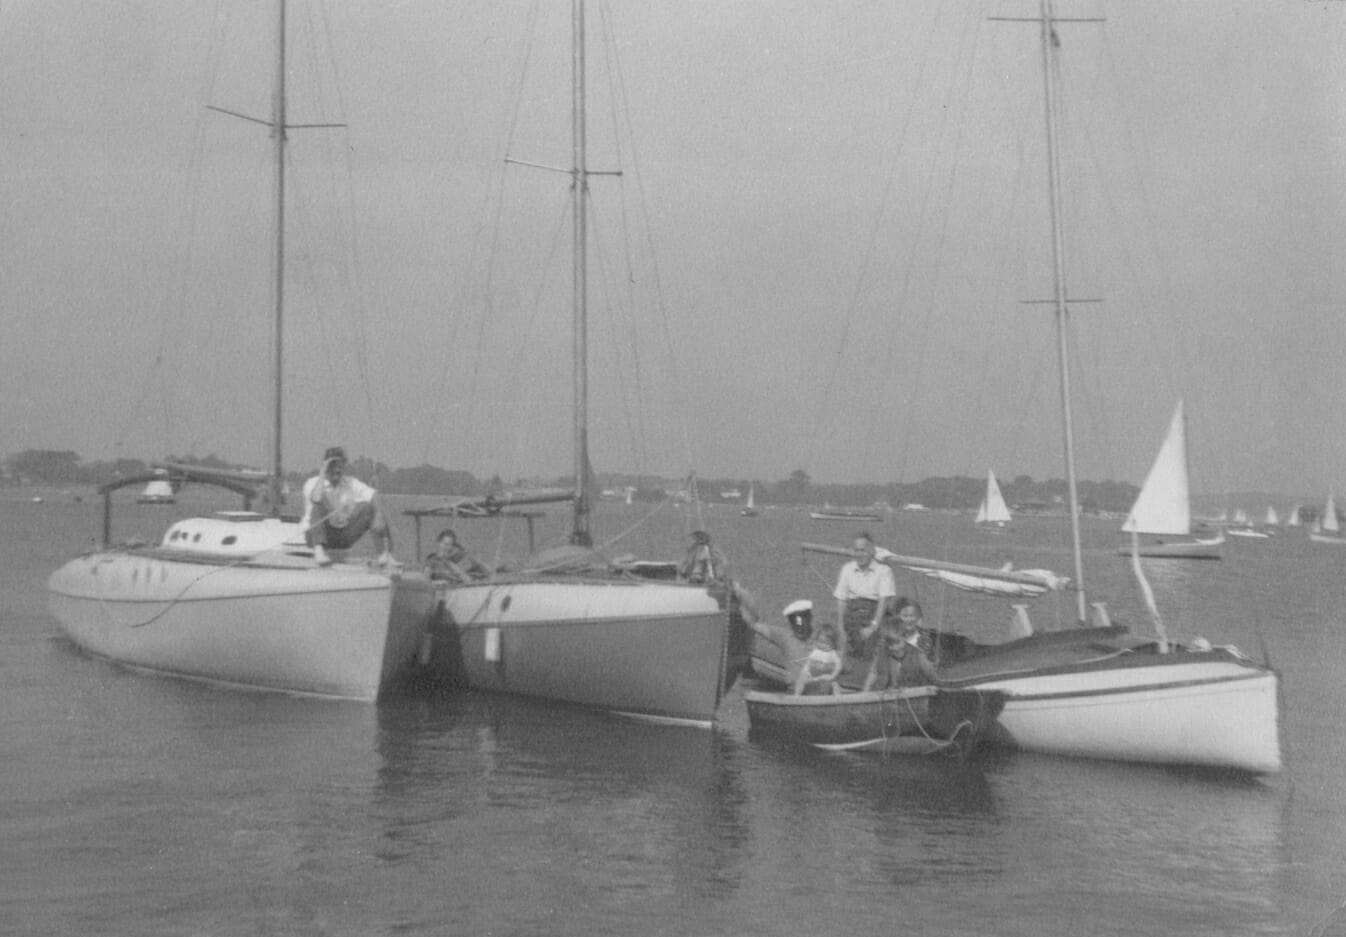 A48, A1 and Sujanwiz on the Hamble in the 1960s